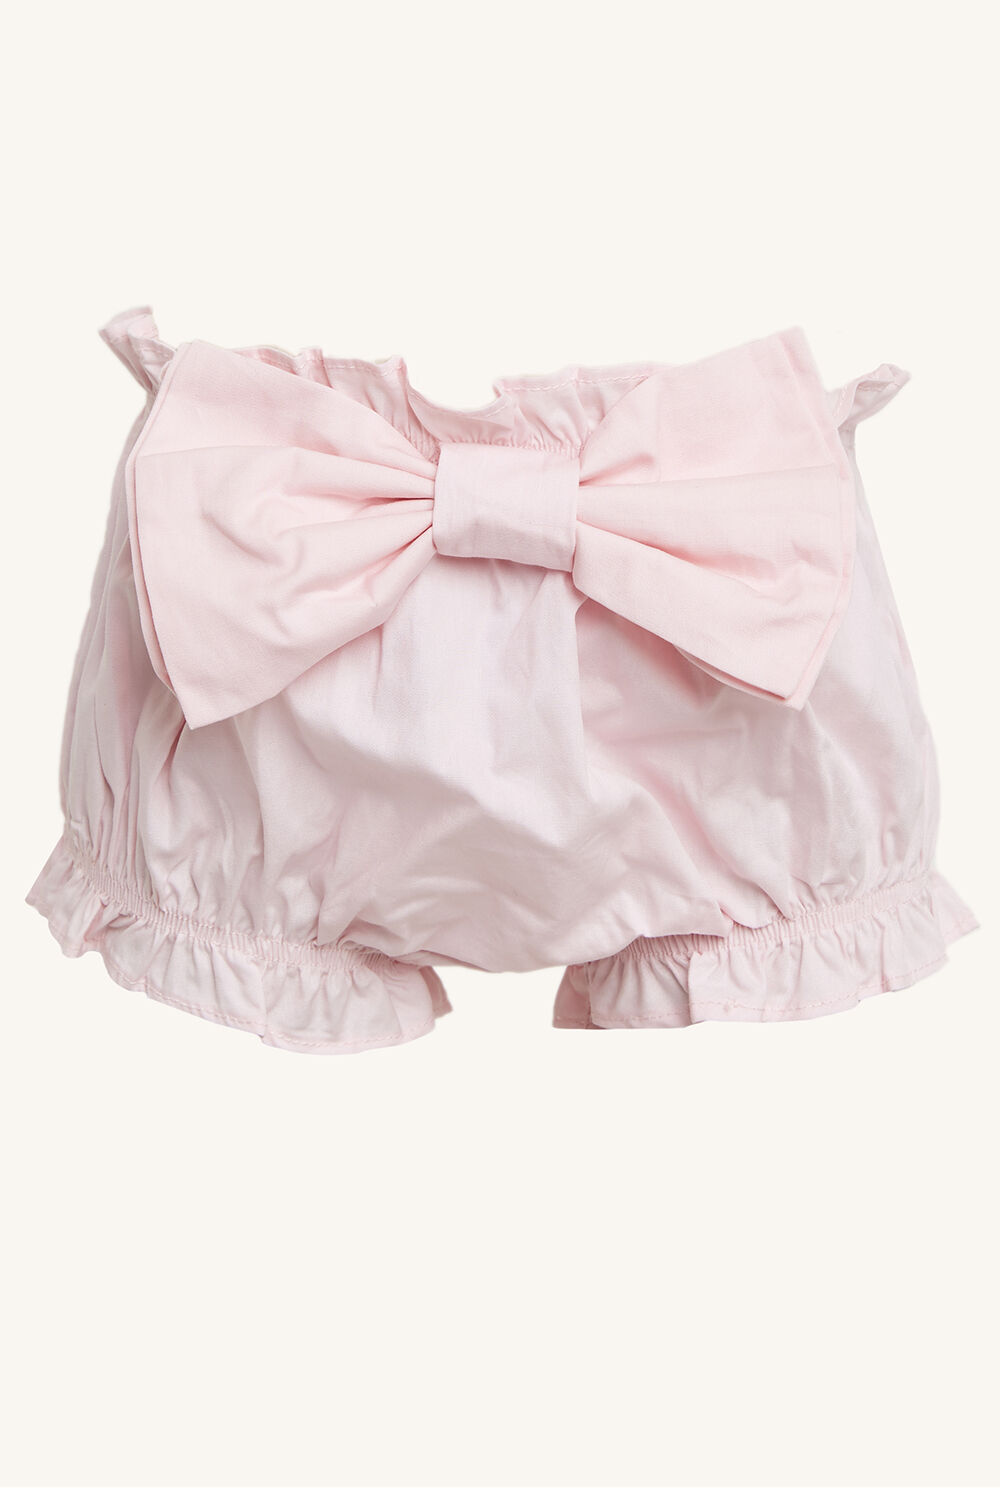 GERTIE BOW BLOOMER in colour PRIMROSE PINK